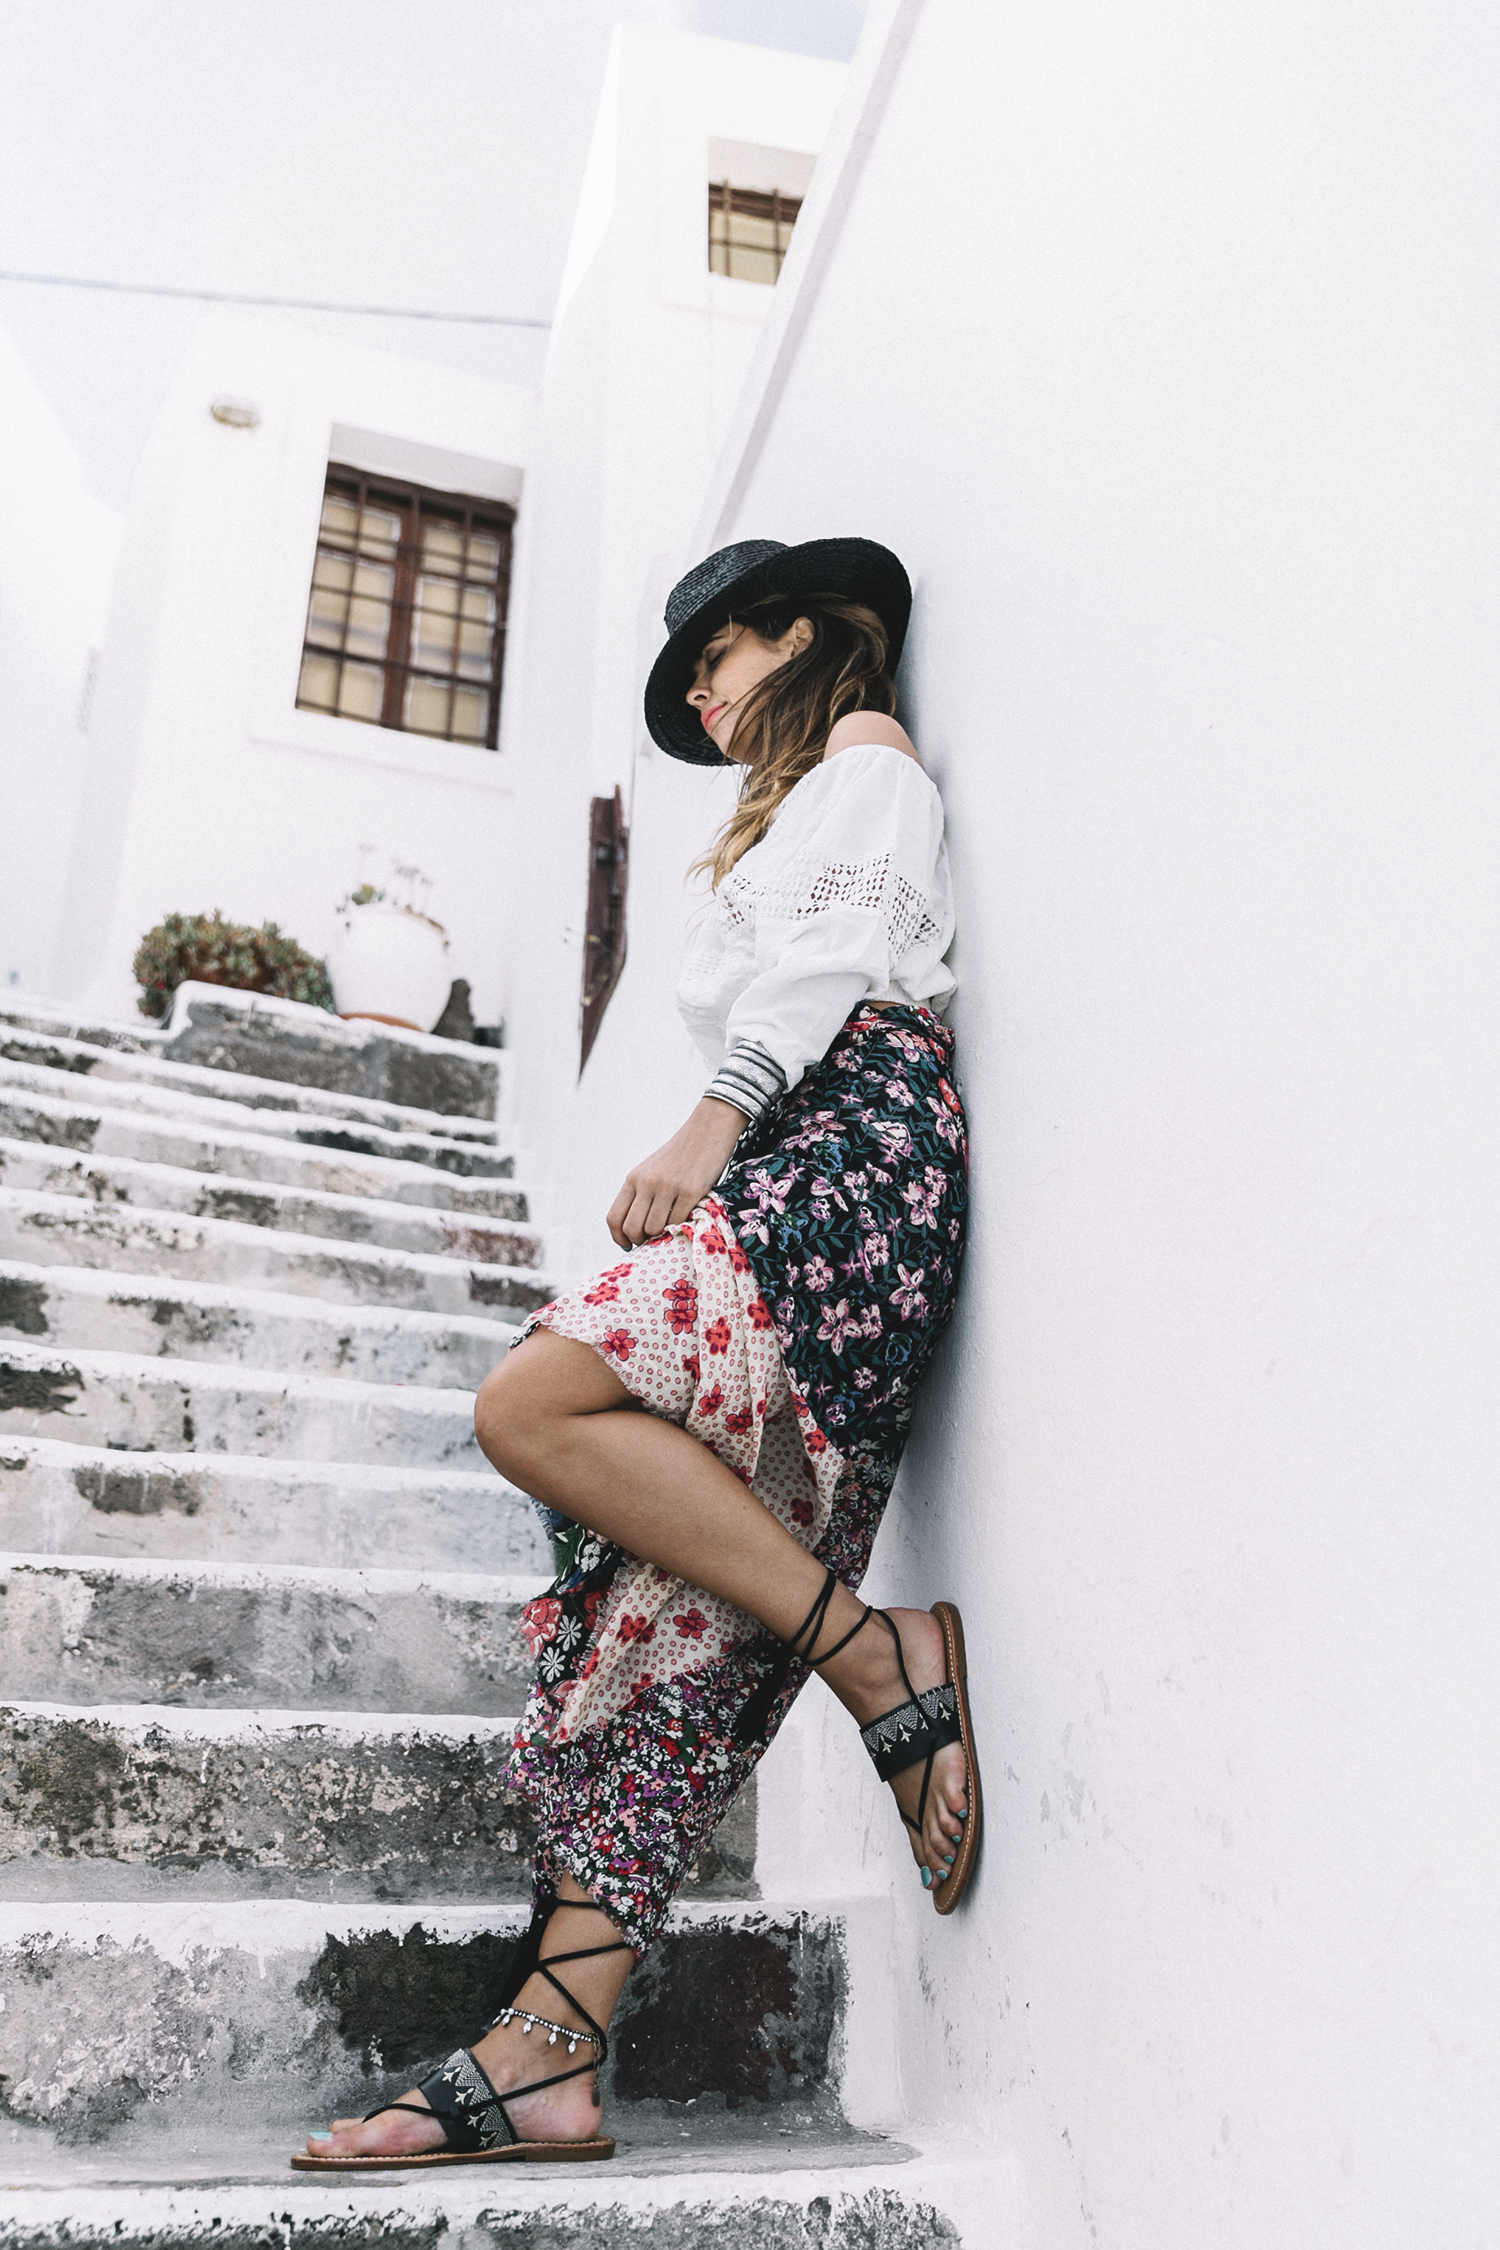 Scarf_As_Skirt_Boho_Top-Straw_Hat-Soludos_Escapes-Soludos_Espadrilles-Summer-Santorini-Collage_Vintage-15